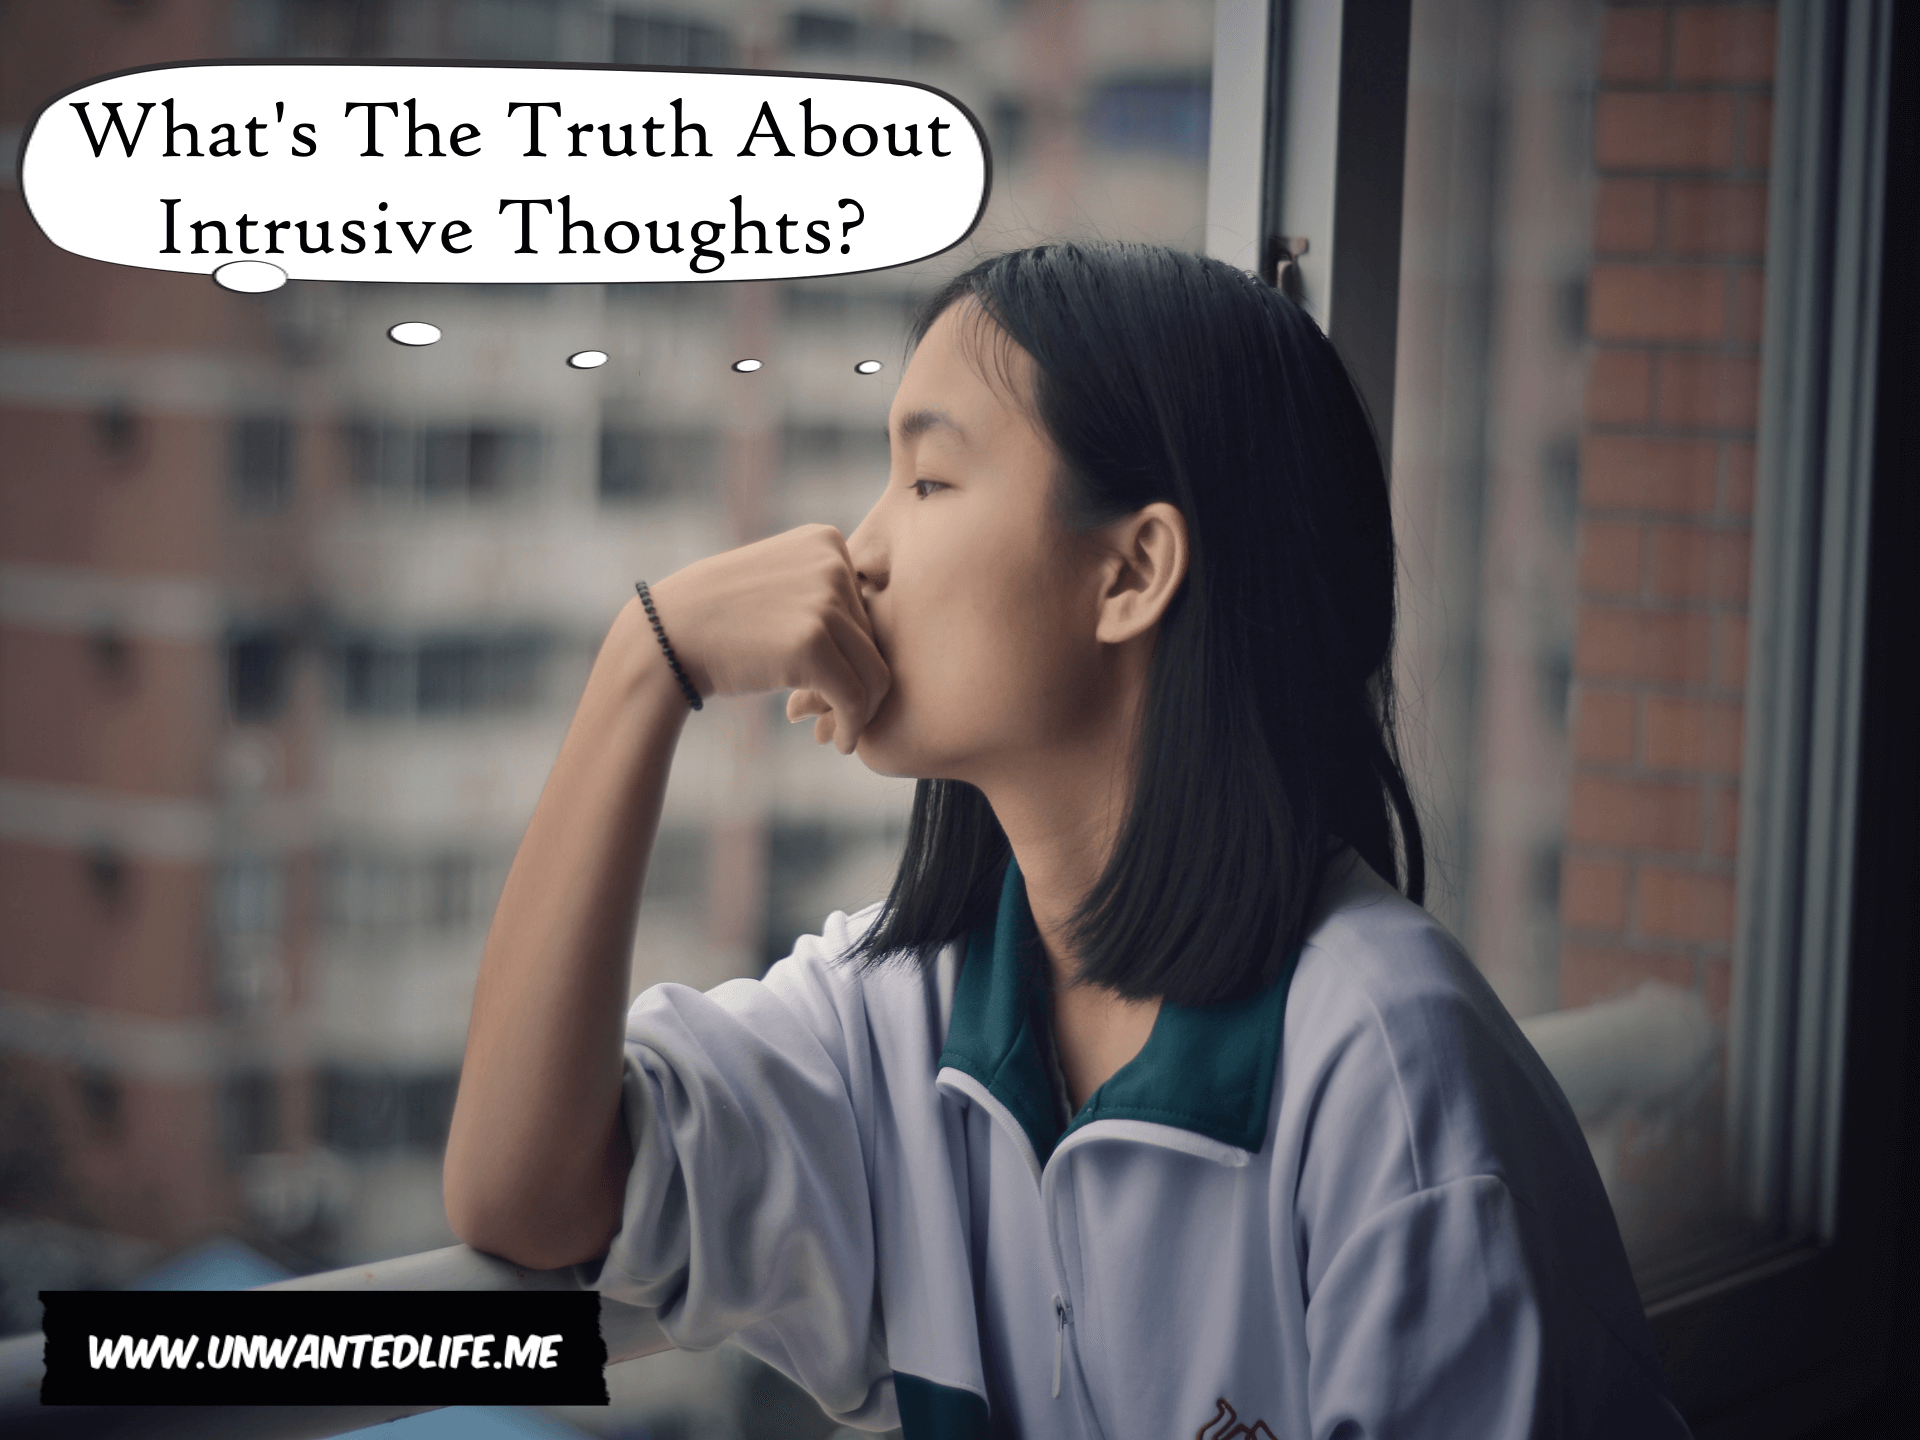 "A picture chosen to represent intrusive thoughts of a young Asian woman looking out of a window with a though bubble above their head which says ""What's The Truth About Intrusive Thoughts?"""